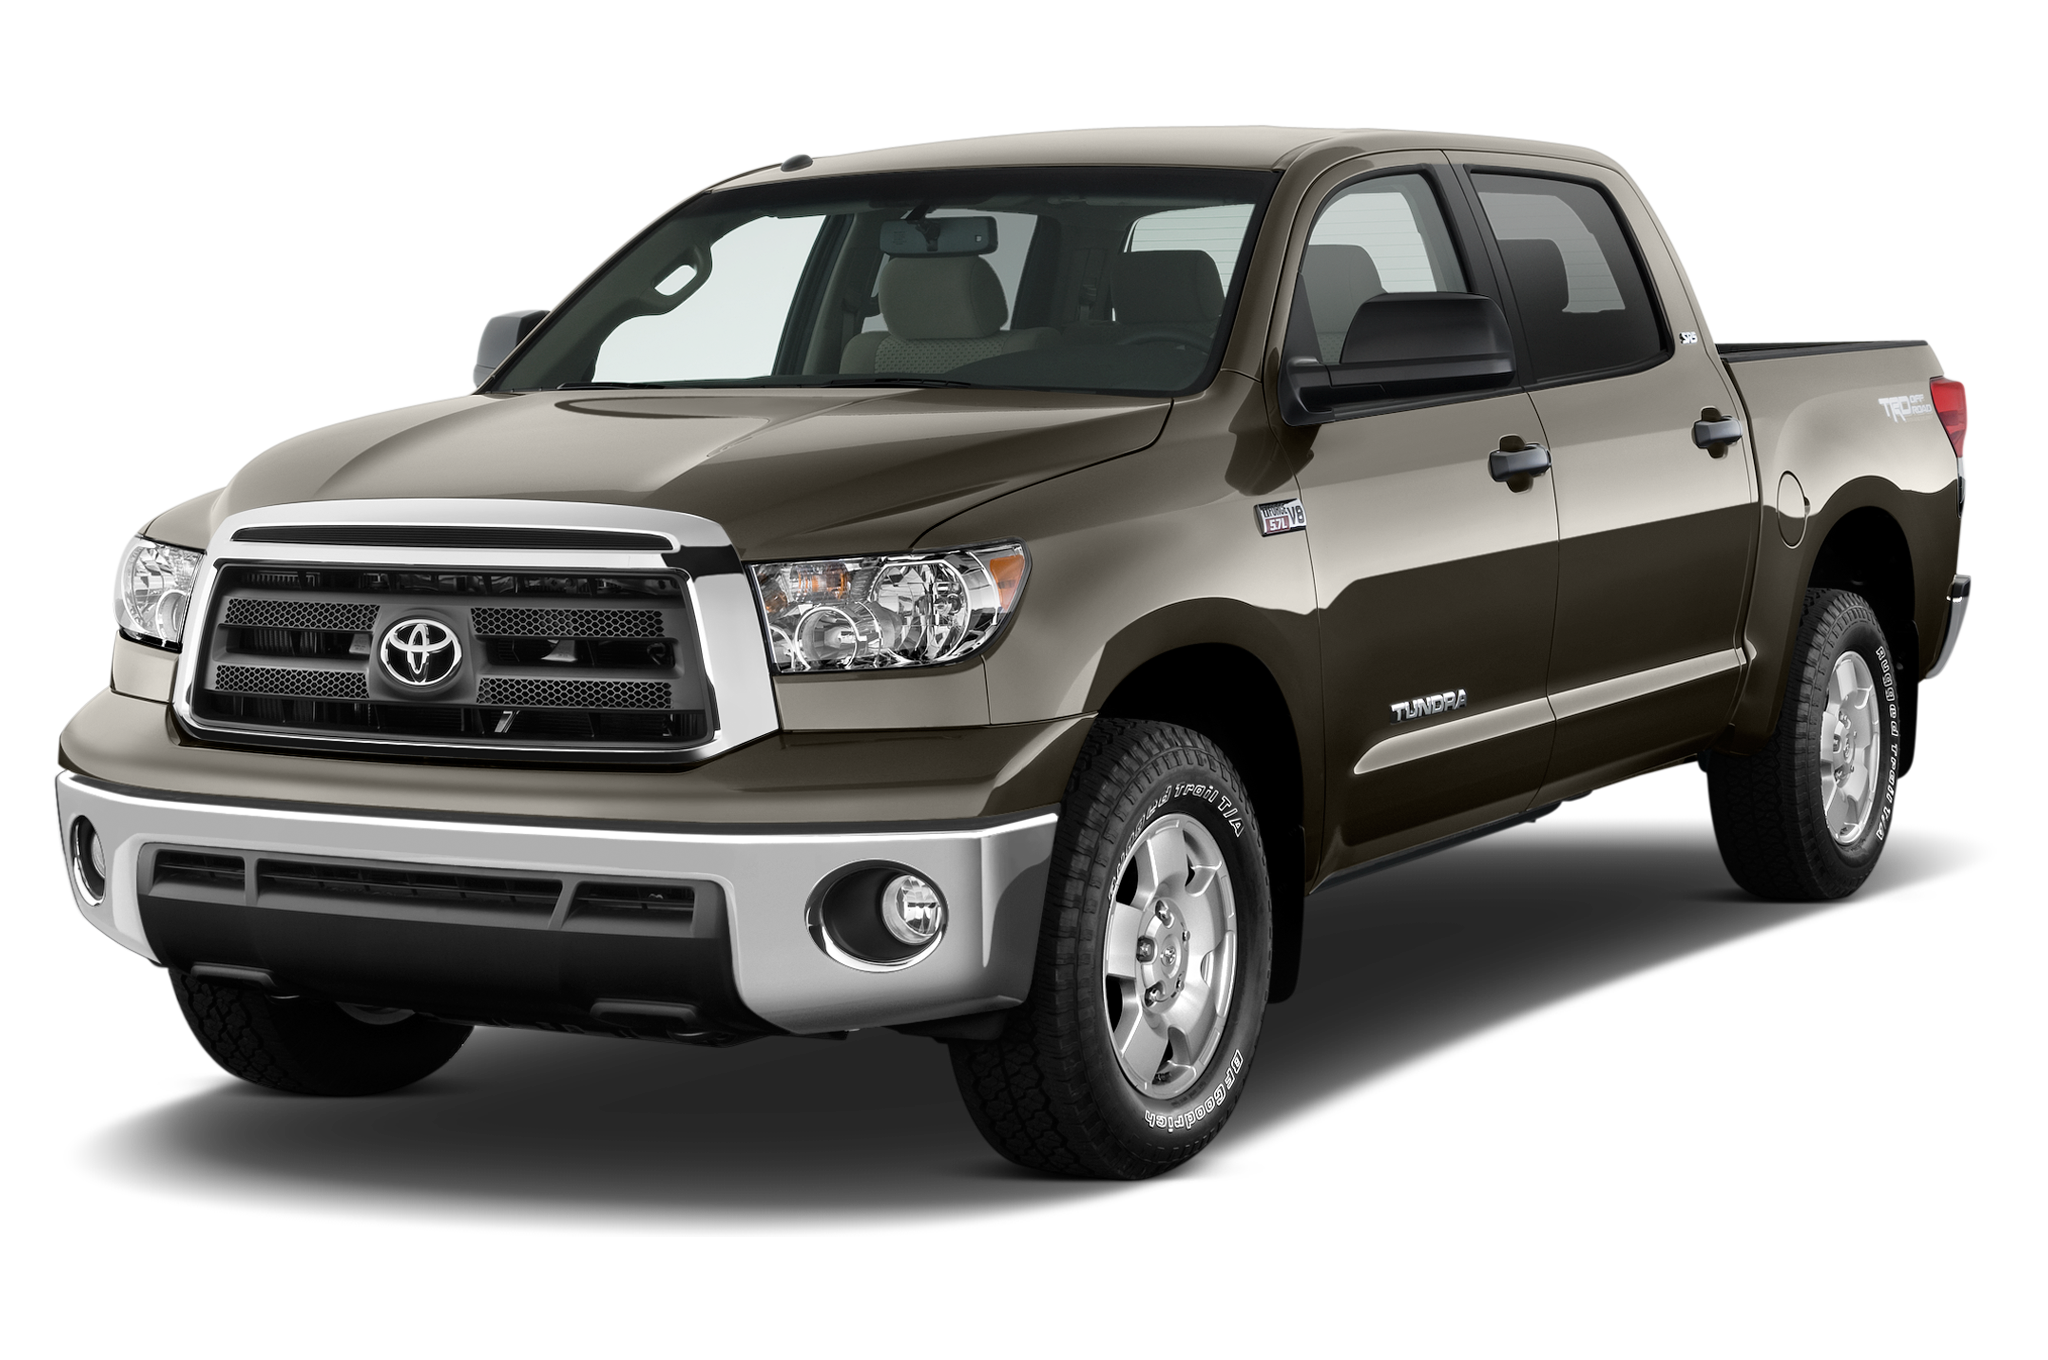 2012 toyota tundra 5 7 auto 4wd ffv tundra grade crew max. Black Bedroom Furniture Sets. Home Design Ideas